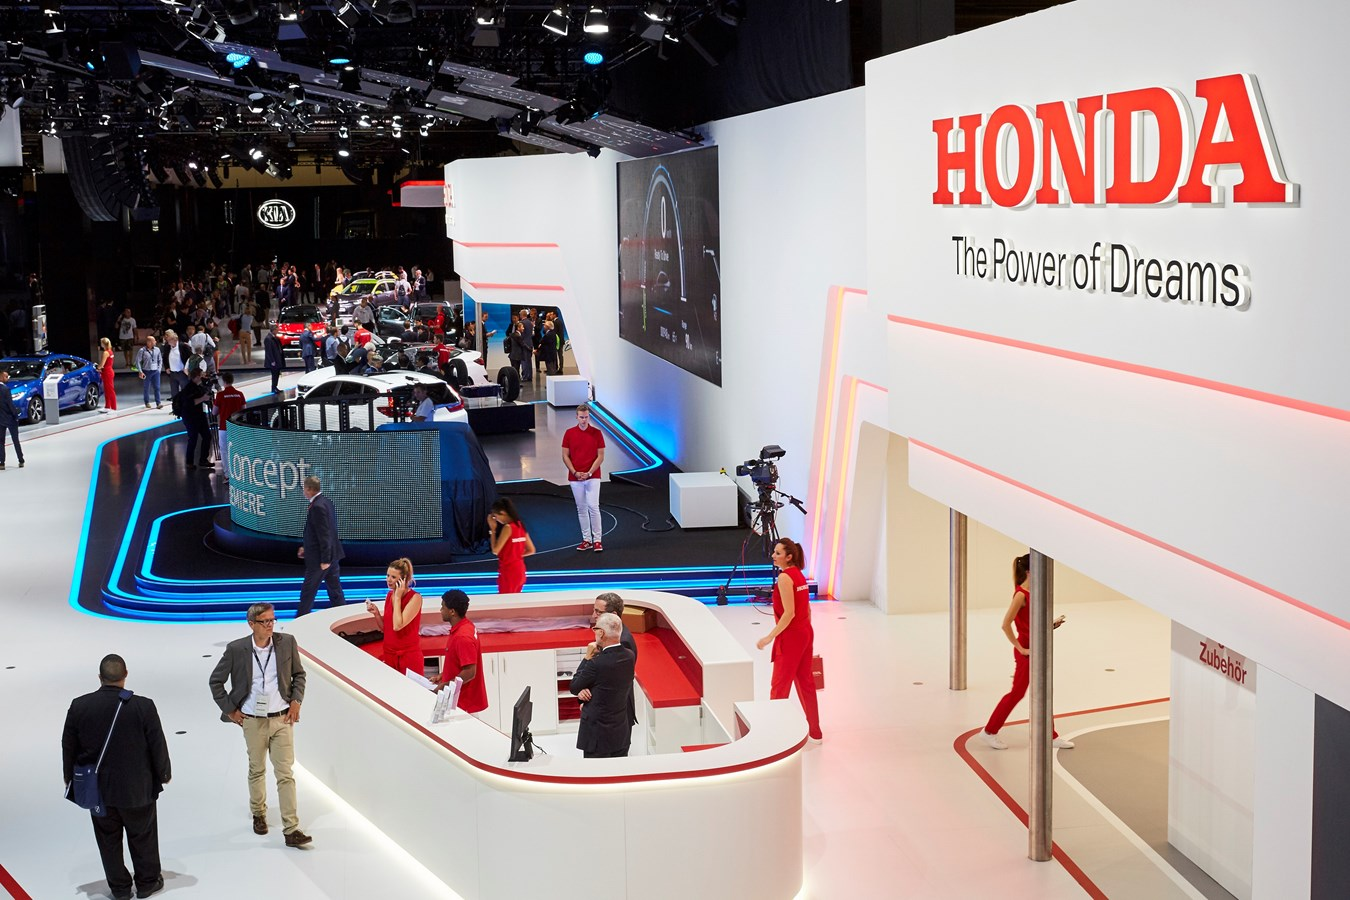 honda in europe case study Honda case study for students is a good example to understand green initiate under the corporate social responsibility myassignmenthelpcom better understand the.